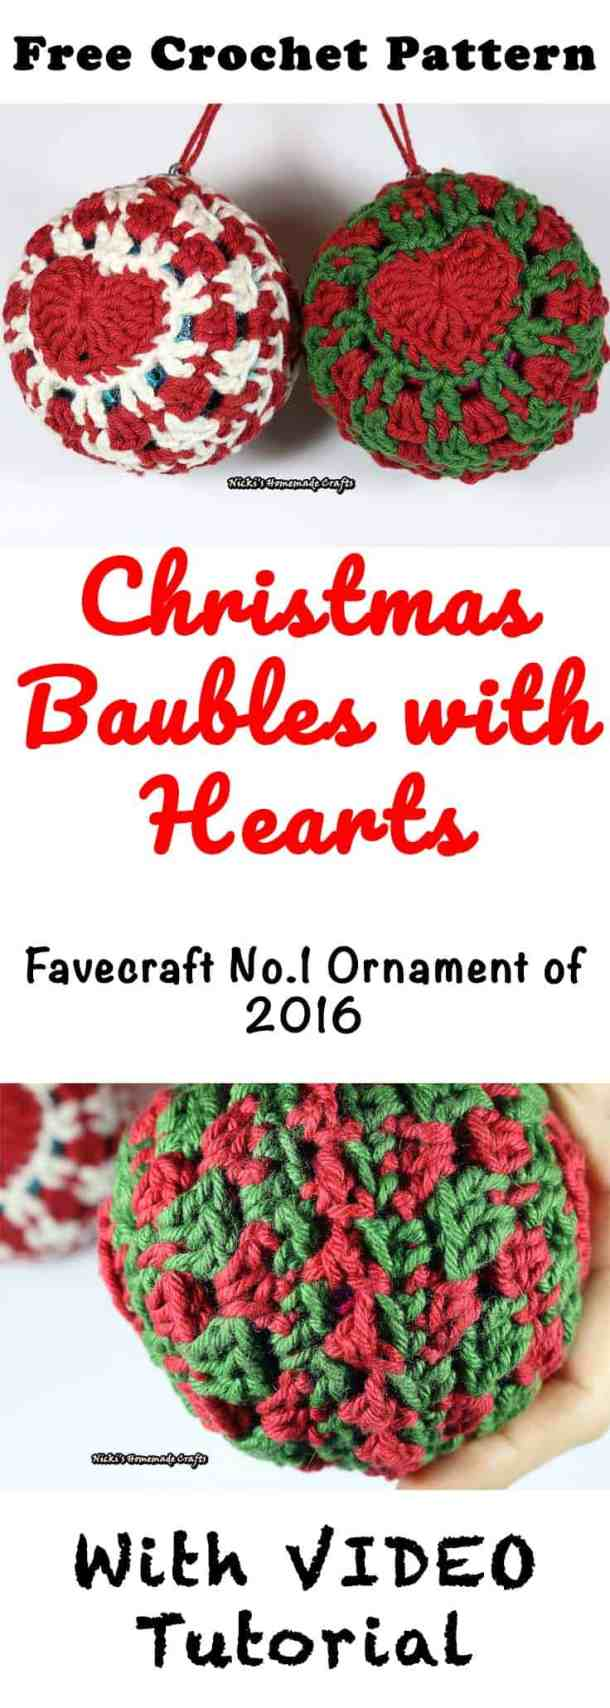 Christmas Baubles with Heart - Free Crochet Pattern by Nicki's Homemade Crafts #crochet #christmas #baubles #hearts #ornament